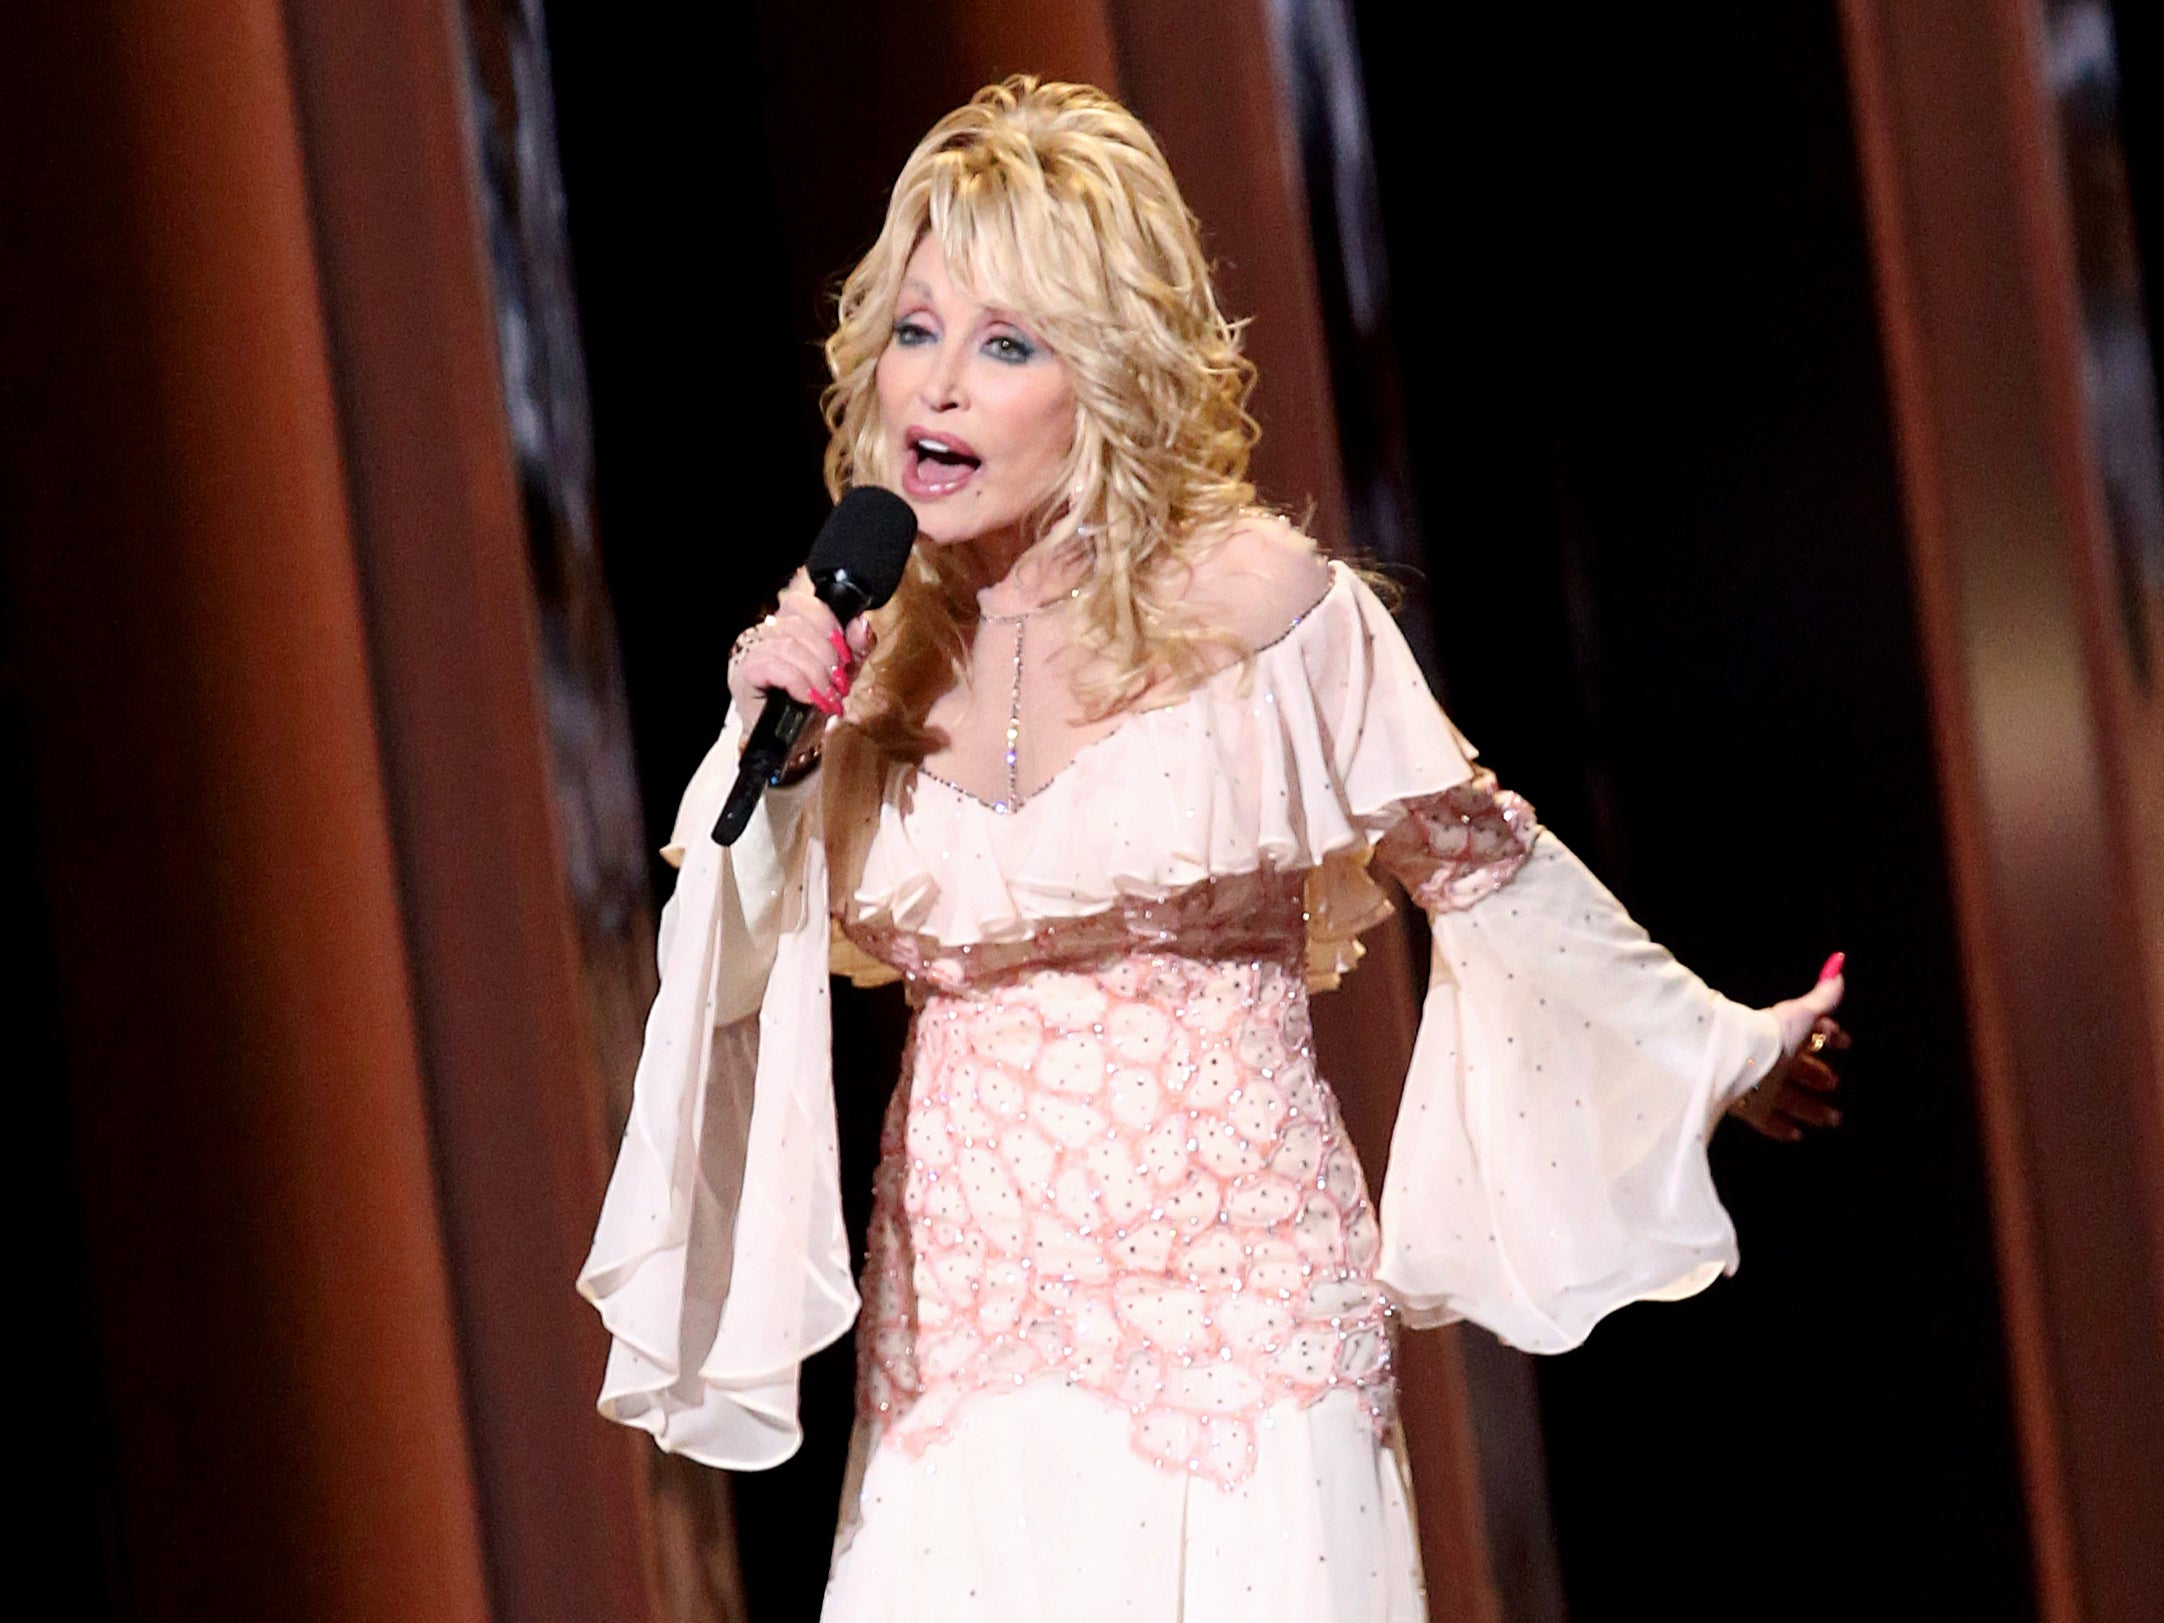 Dolly Parton turned down the Presidential Medal of Freedom twice